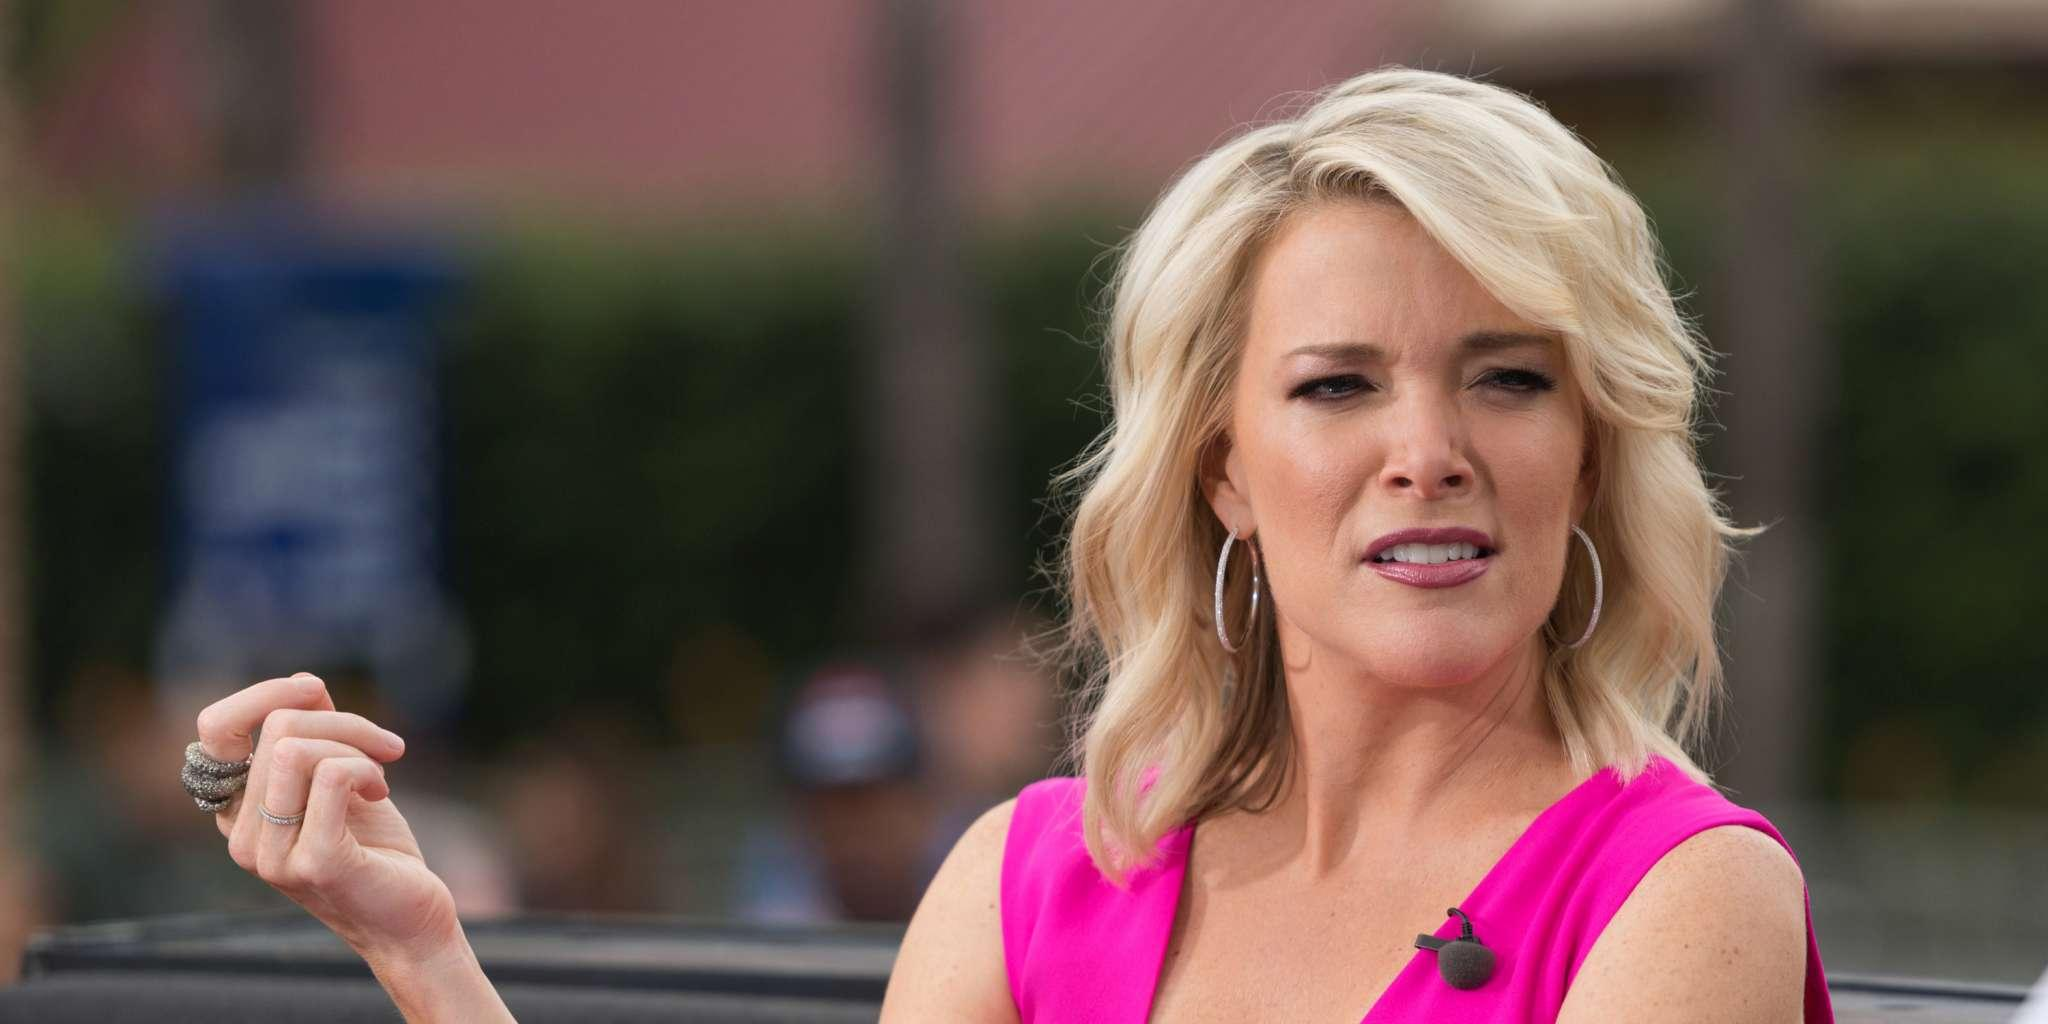 Megyn Kelly And NBC News Agreed To Her Exit Terms - She Can Leave The Company With A $30 Million Payout - People Want Her Back To Fox News